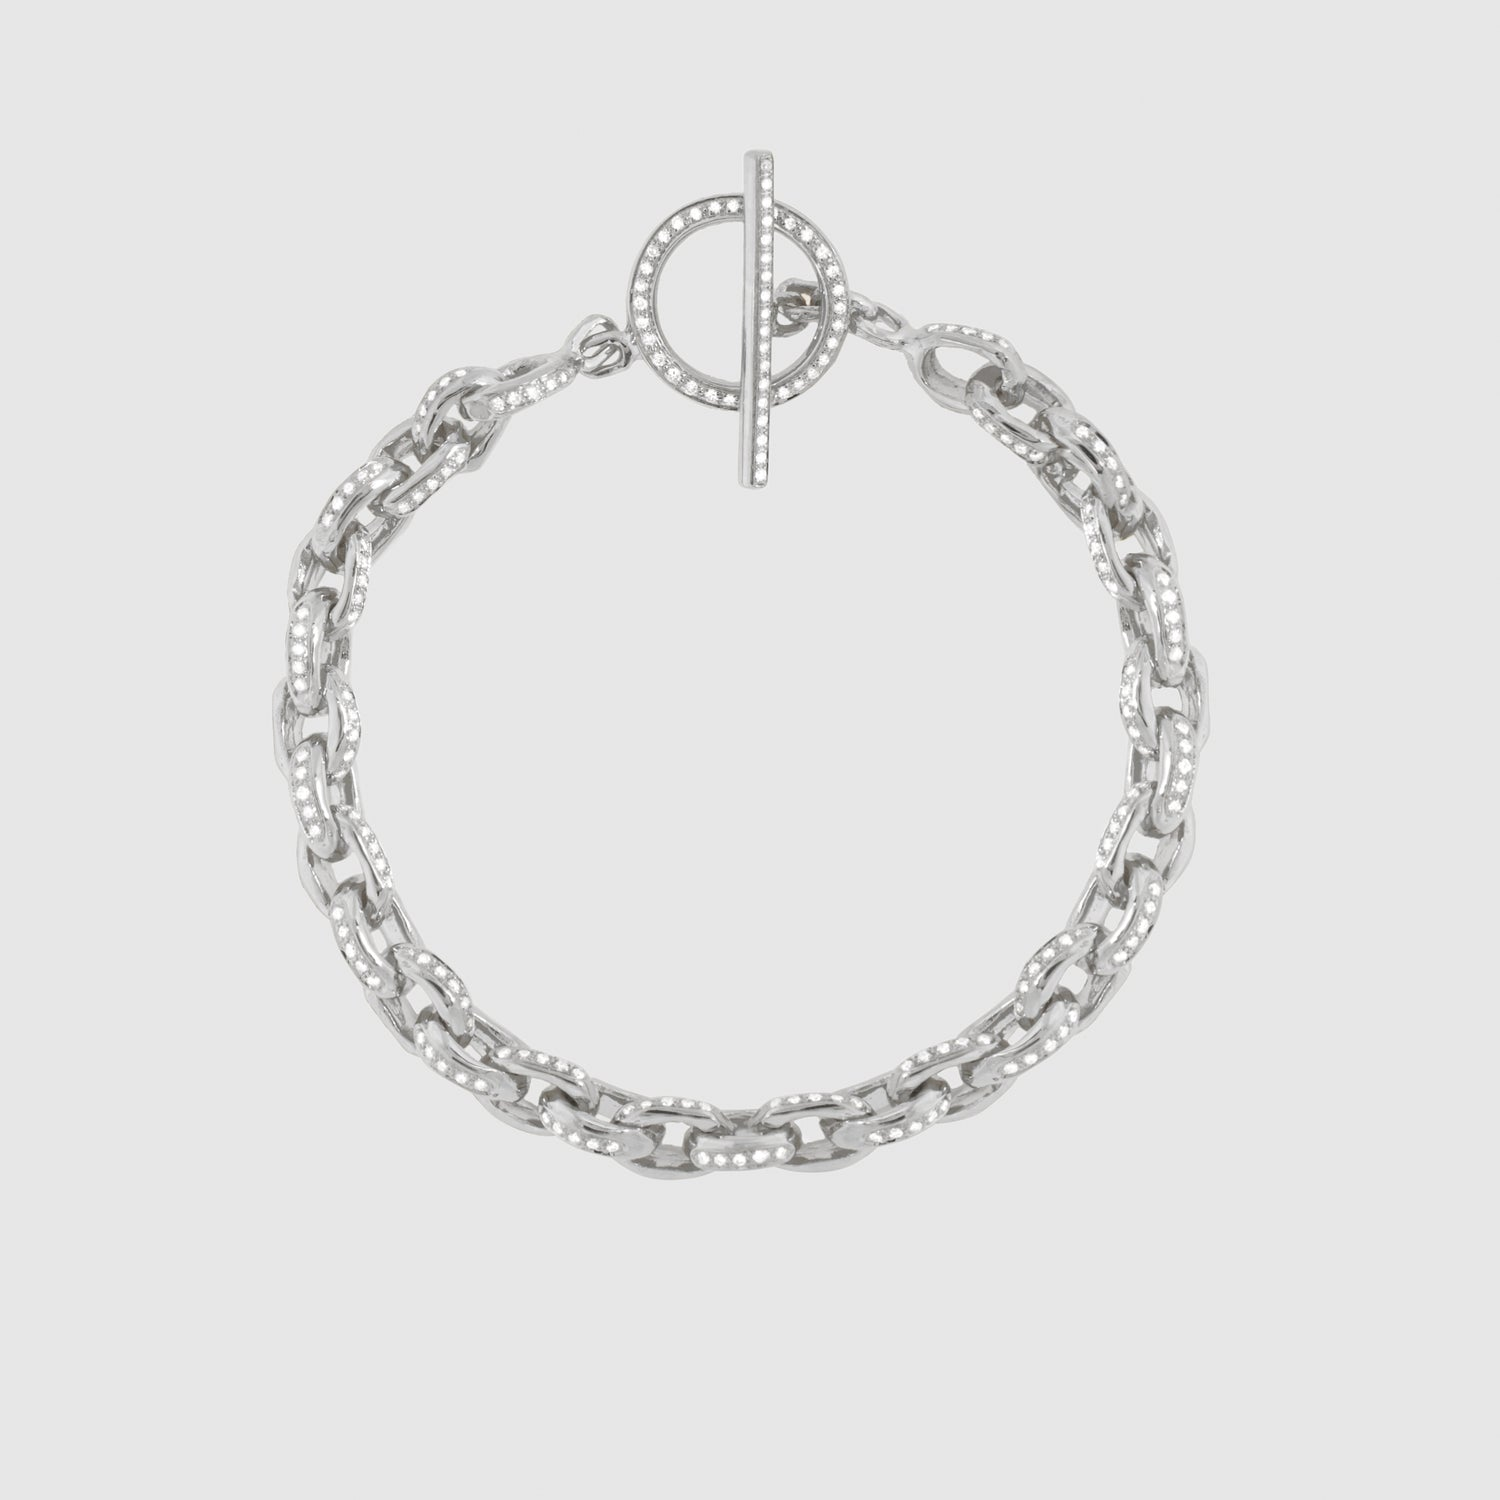 Diamond Row 5 Bracelet